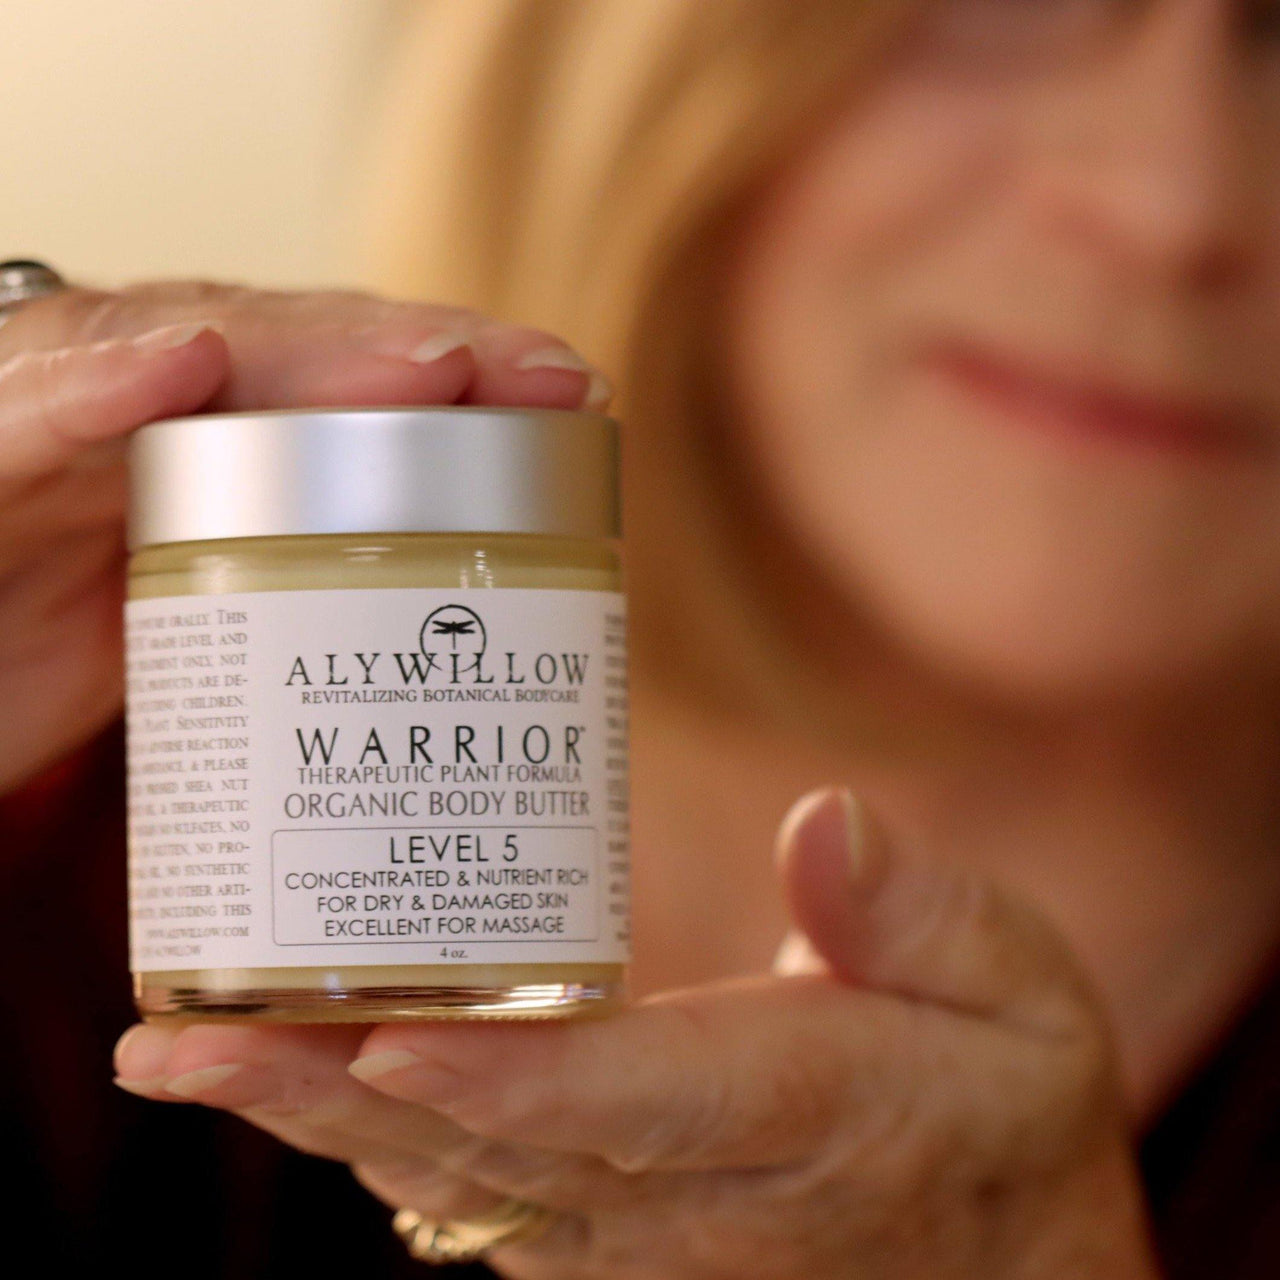 Anti-aging vegan body butter WARRIOR LEVEL 5 MOISTURIZER is a hydrating crème for very dry skin